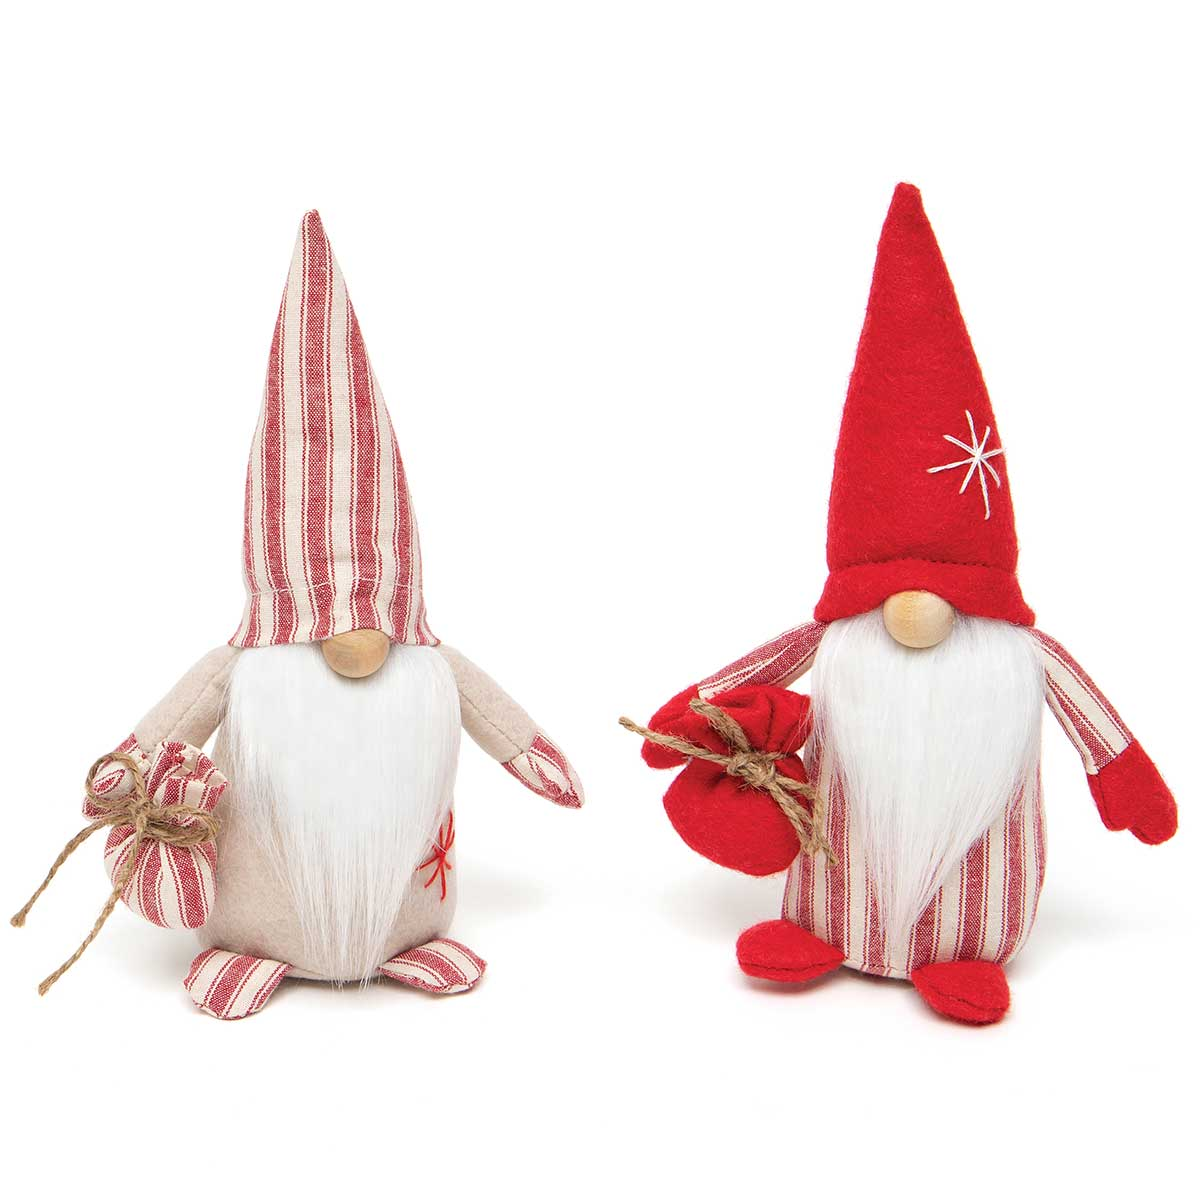 KRIS GNOME RED/BEIGE WITH BAG, TICKING, WOOD NOSE